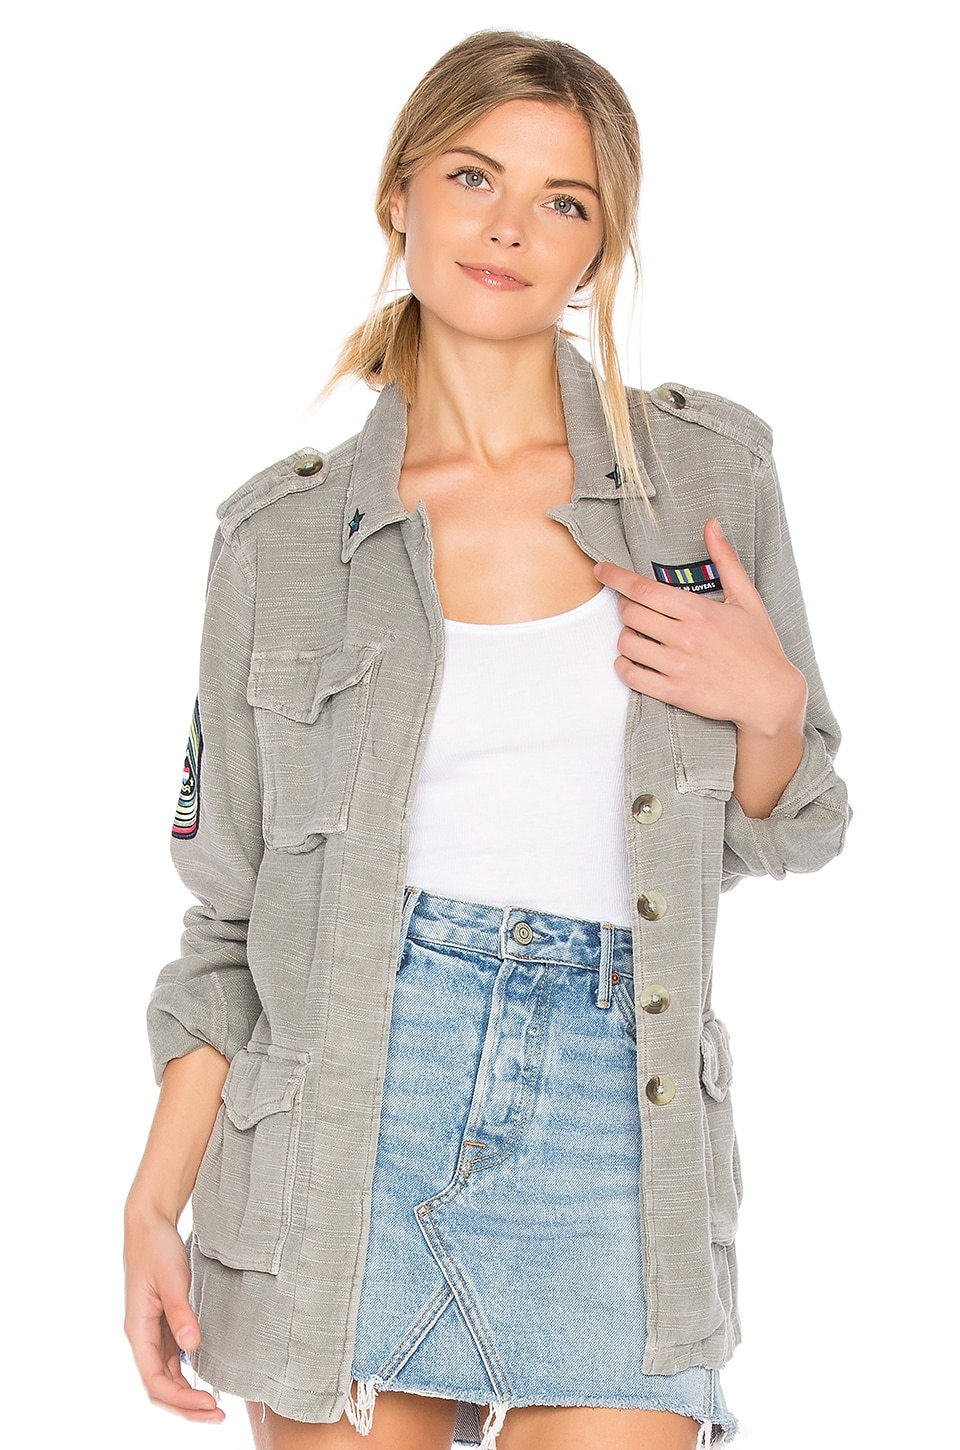 SUNDRY Patches Army Jacket in Pigment Olive